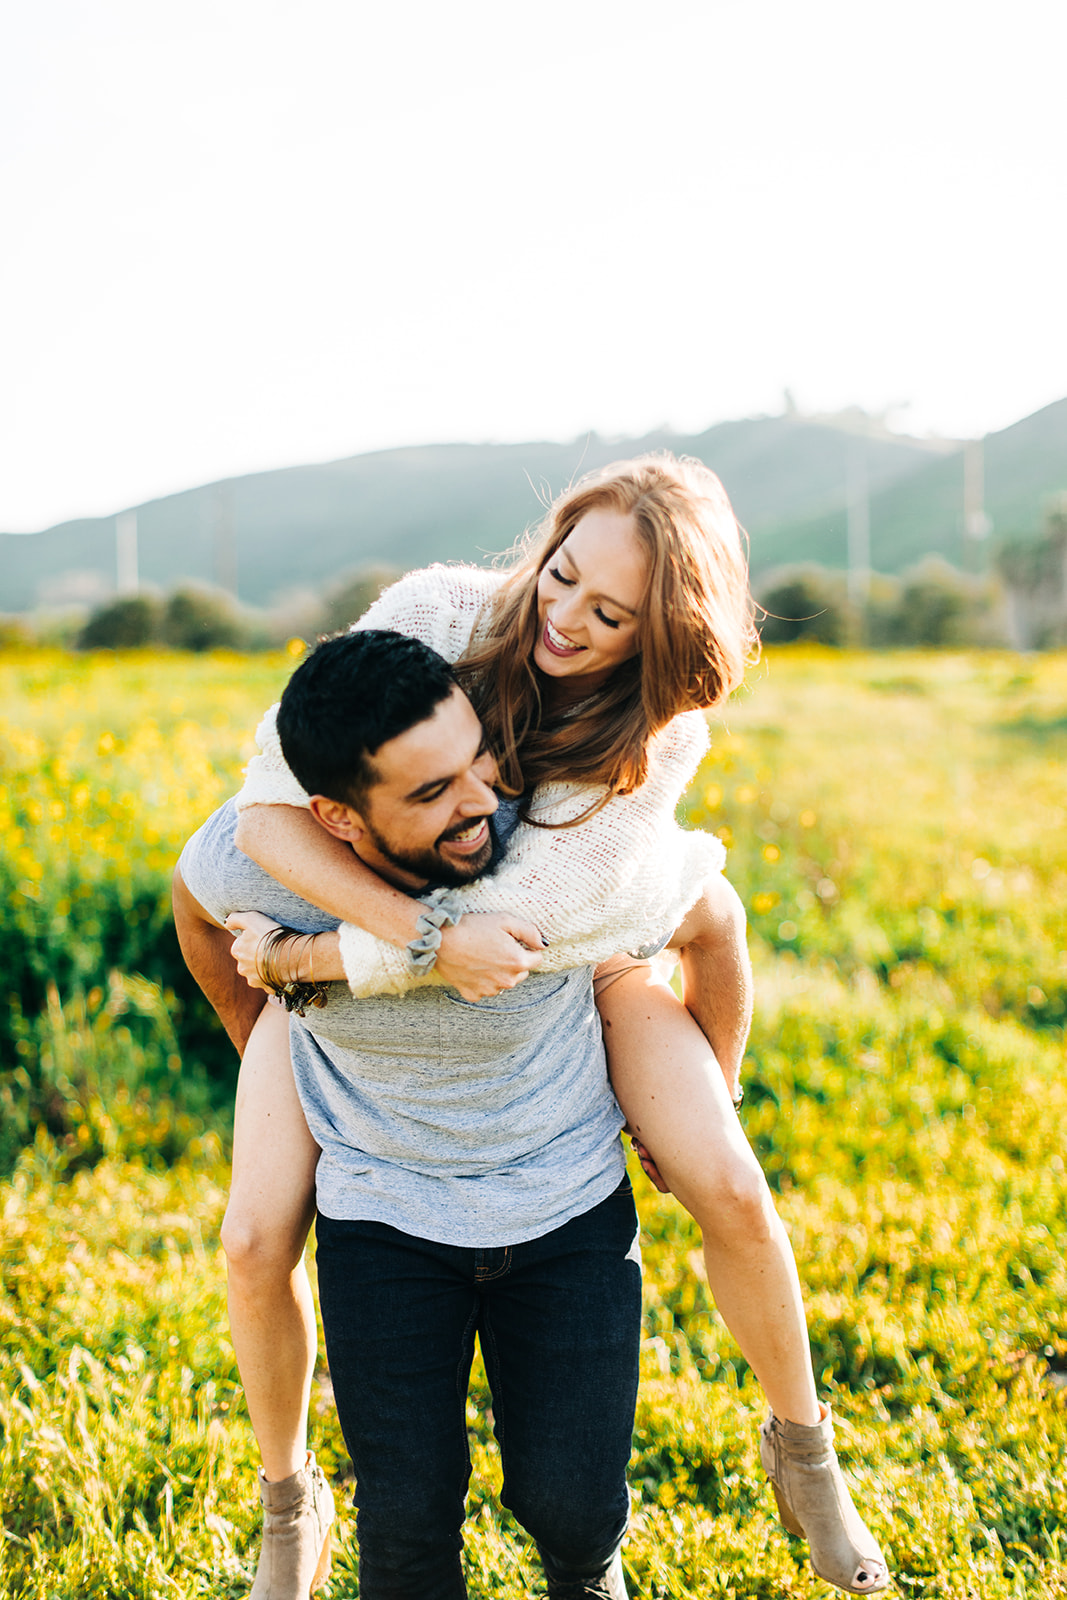 Katie-Yovin_Richard_Superbloom-Engagement-Photos_Clarisse-Rae_Southern-California-Wedding-Photographer-Orange-County-Engagement-Photos-18